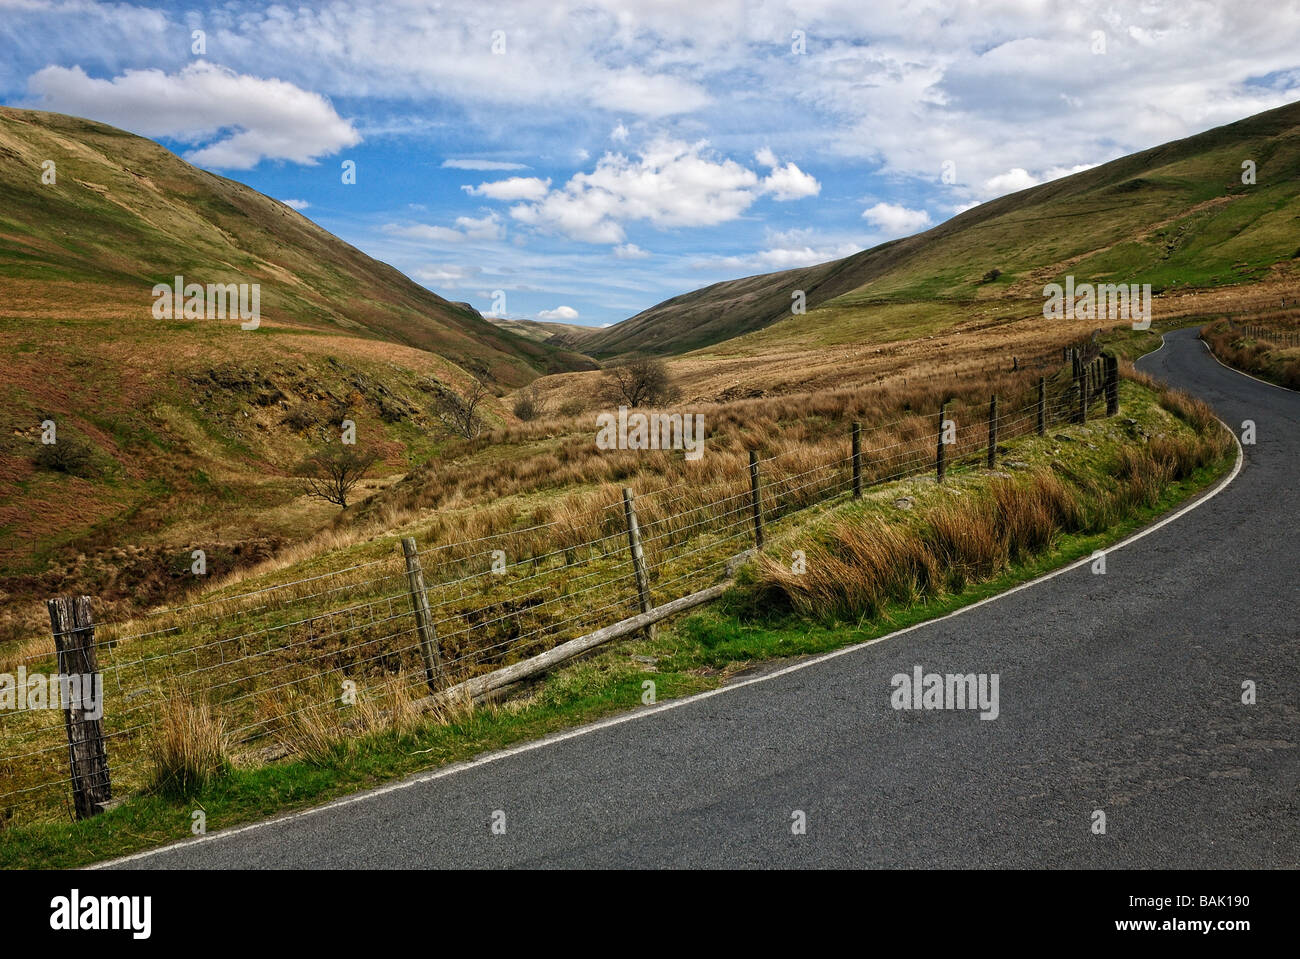 Elan Valley, Wales - Stock Image